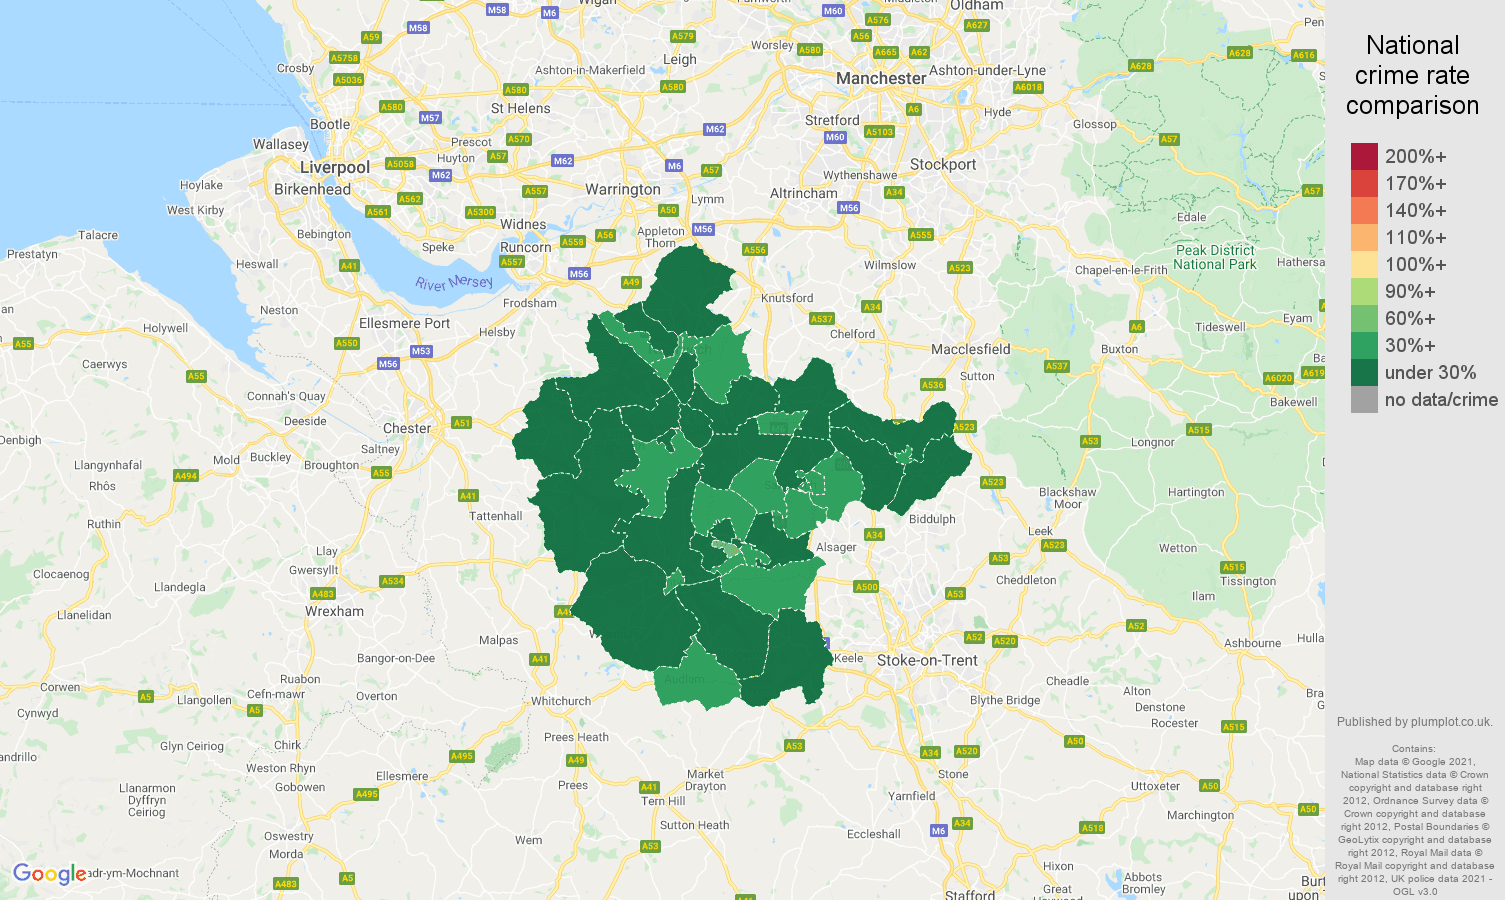 Crewe vehicle crime rate comparison map